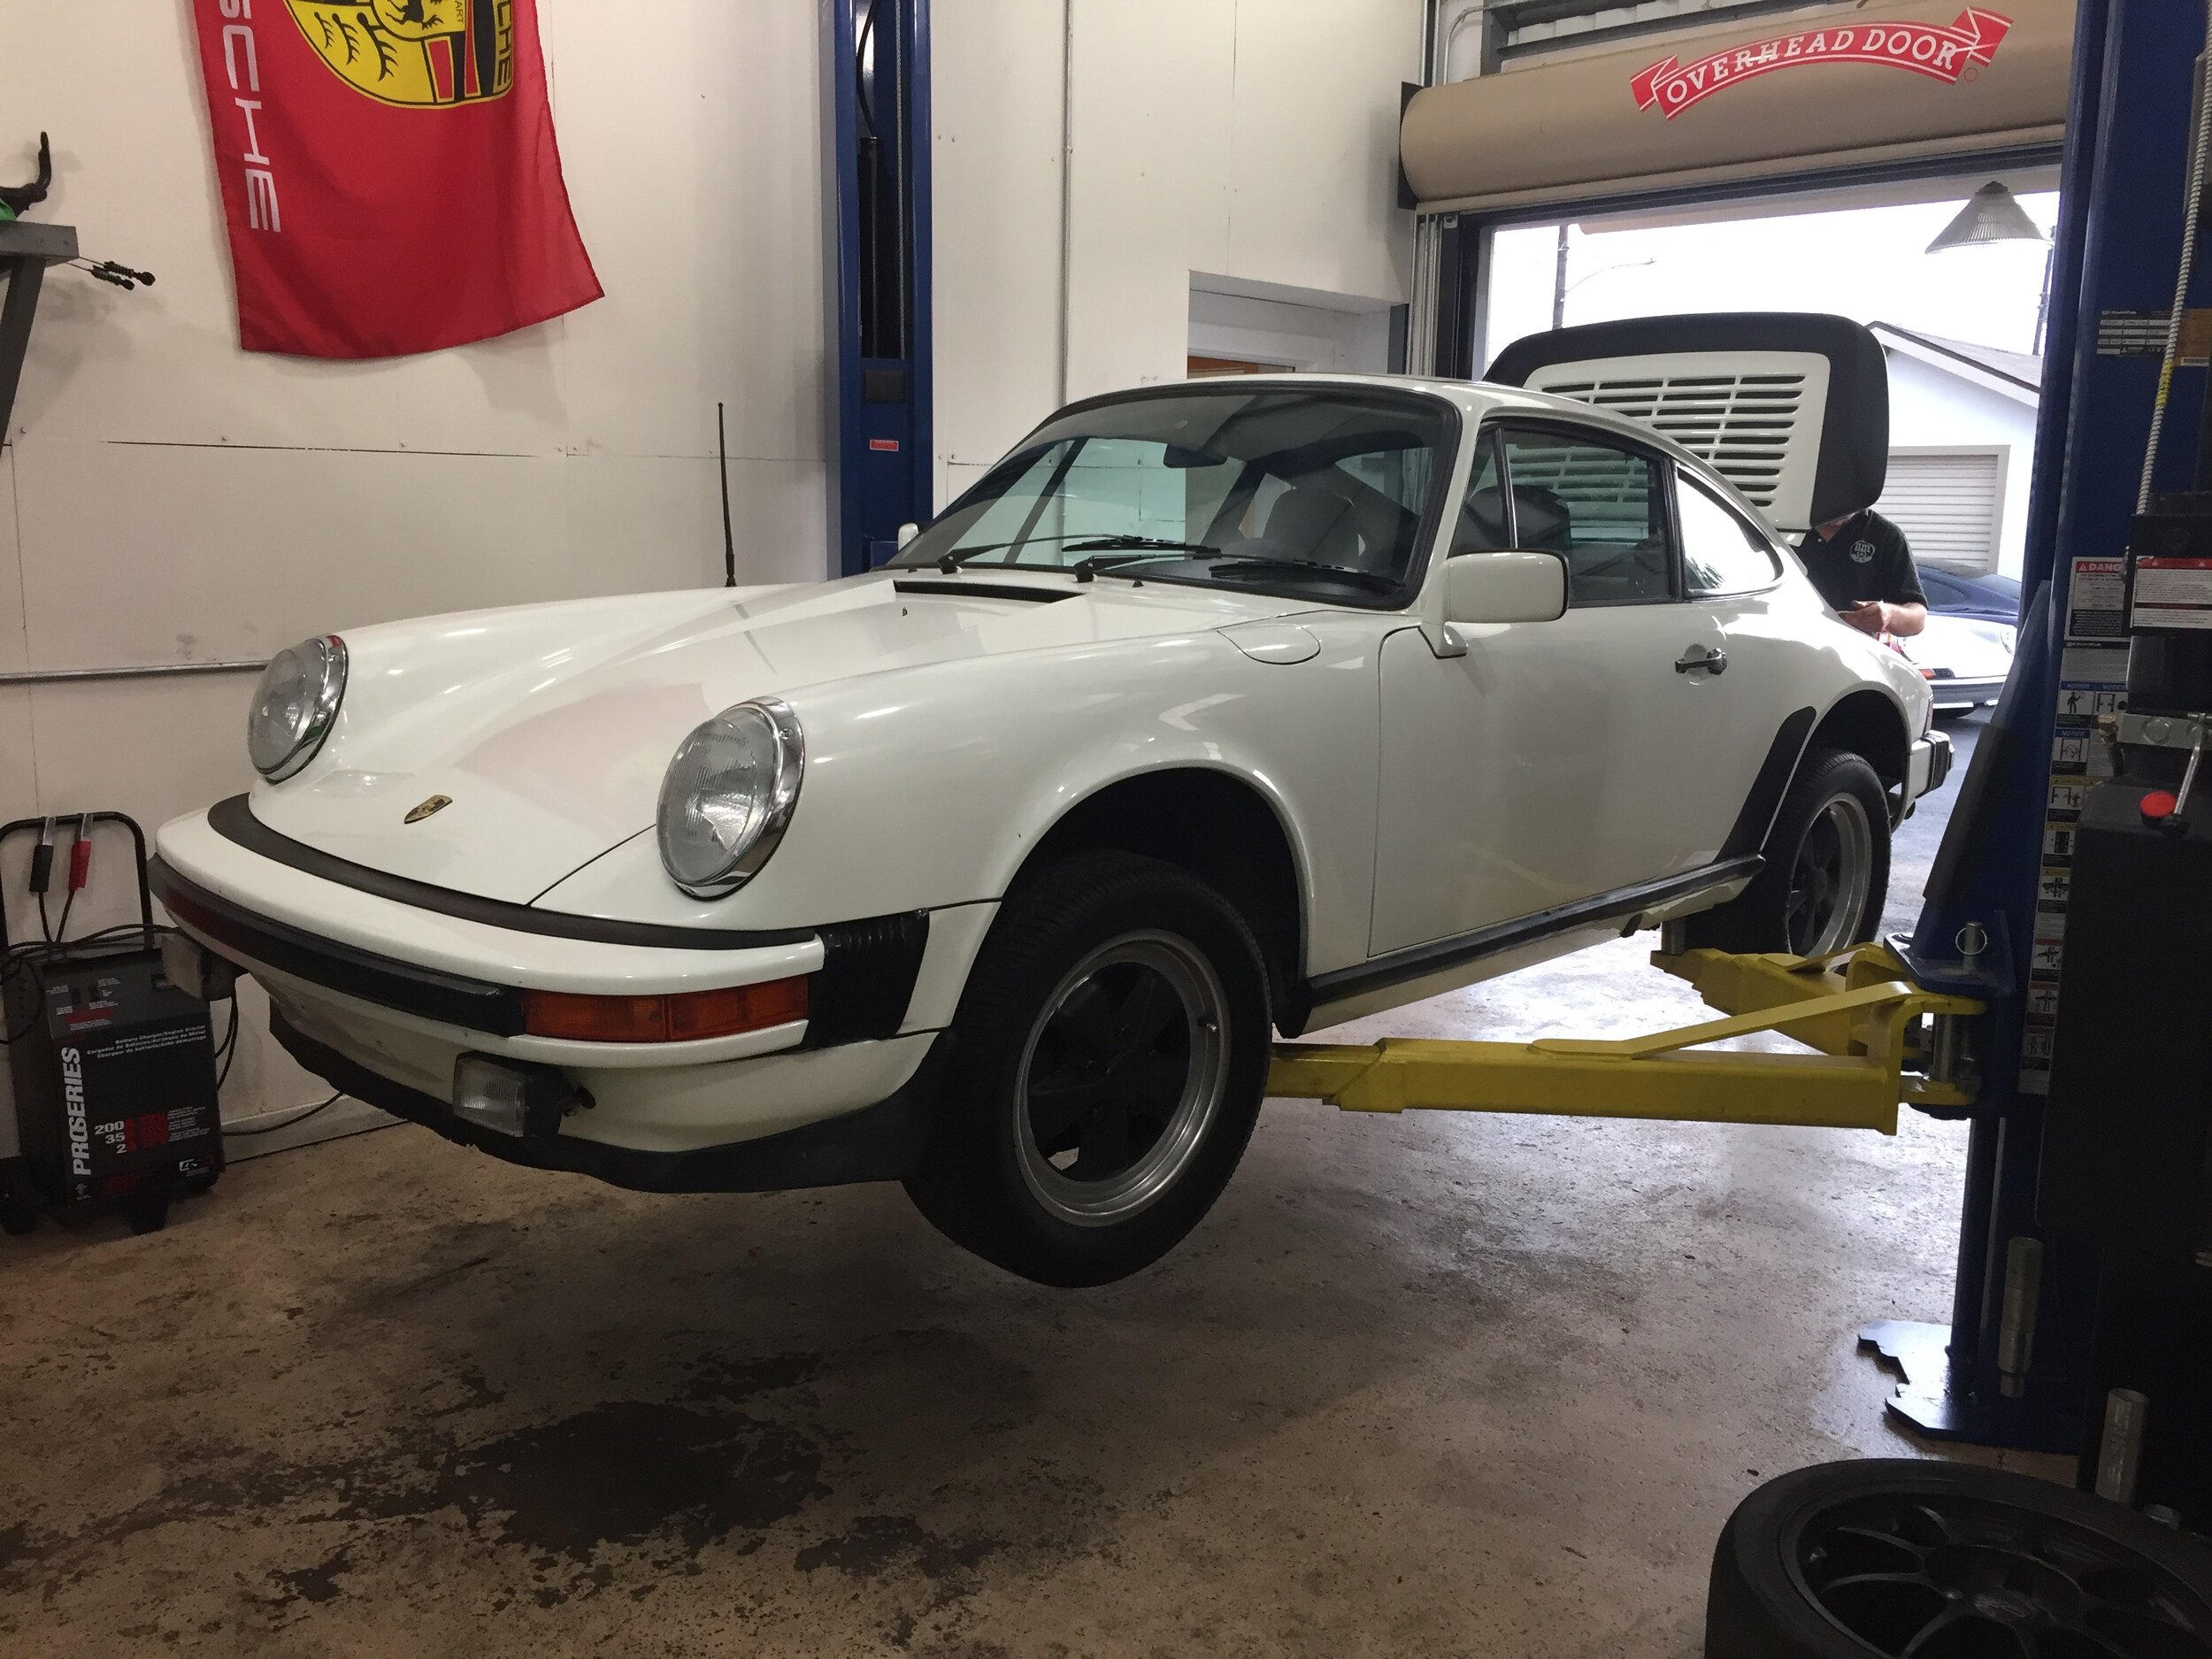 The post-purchase inspection at Modern Aircooled